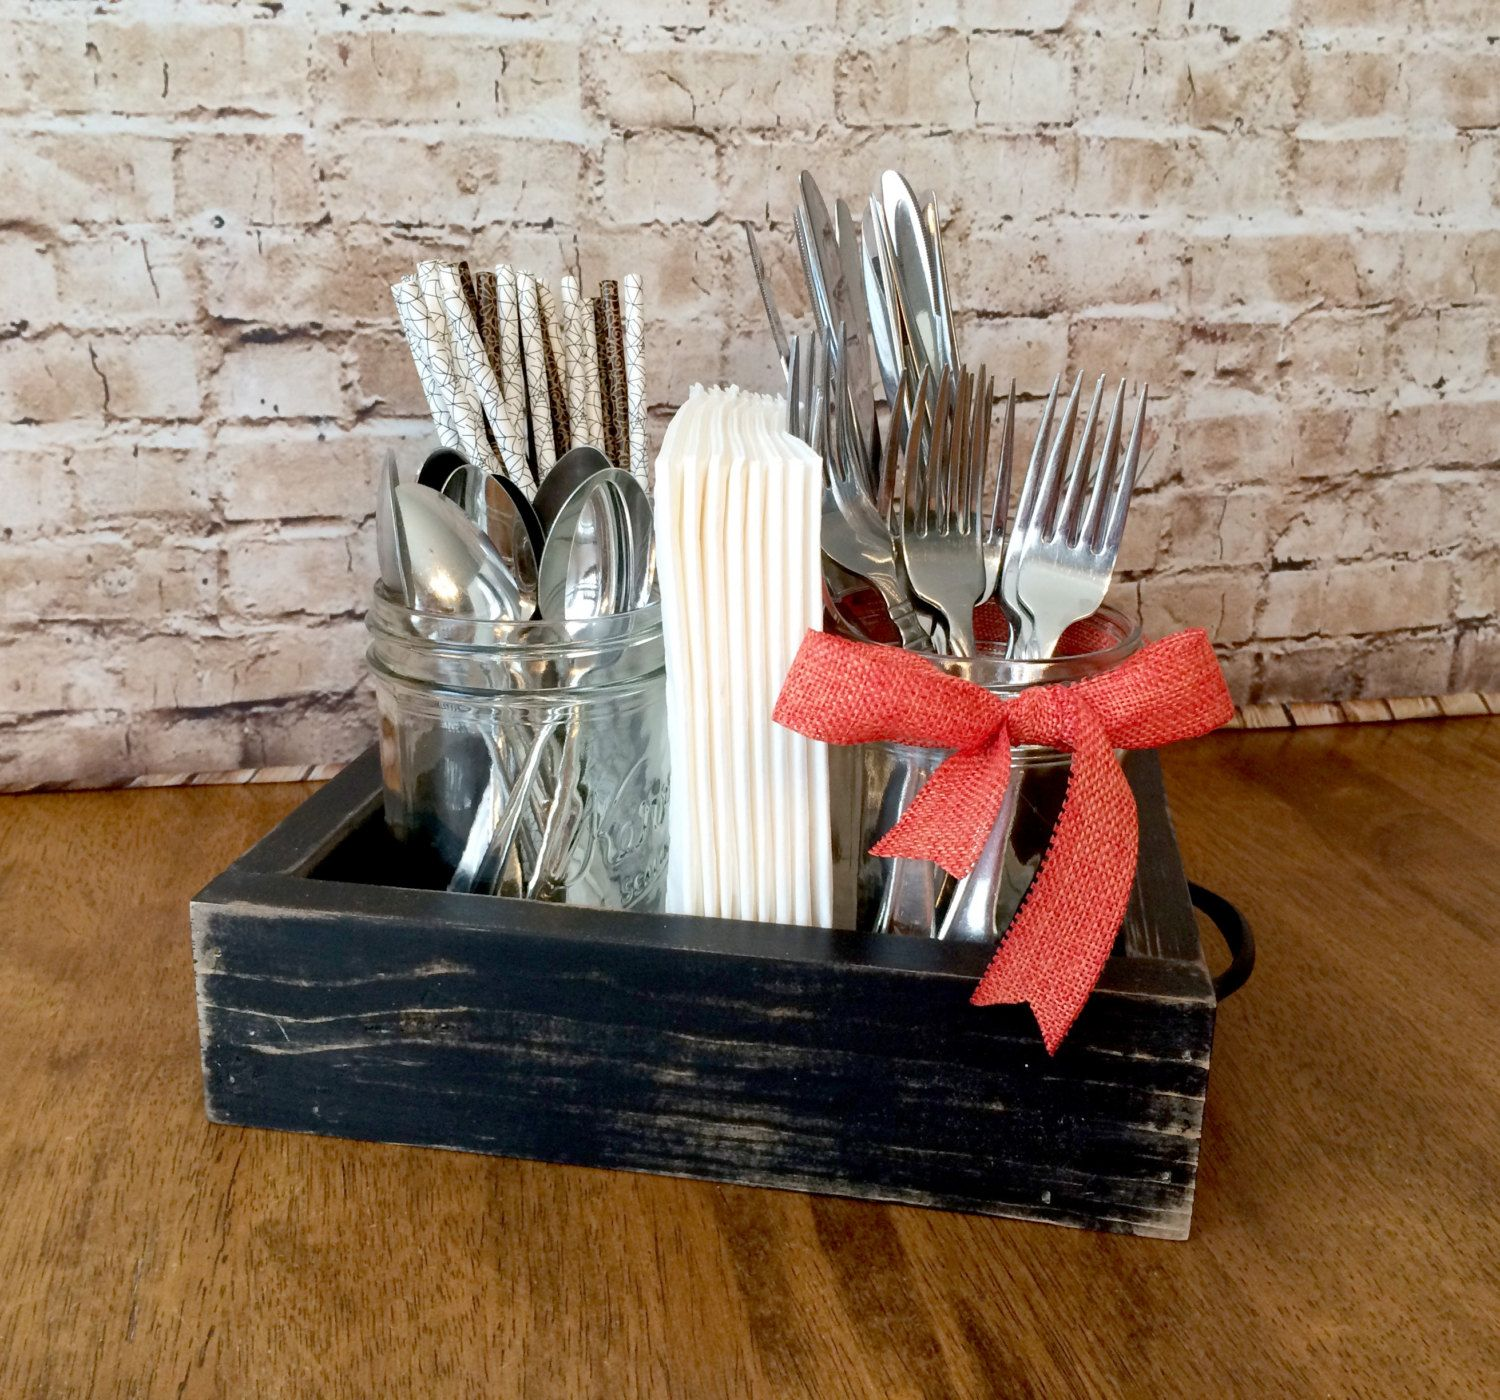 Distressed farmhouse style utensil and napkin holder with